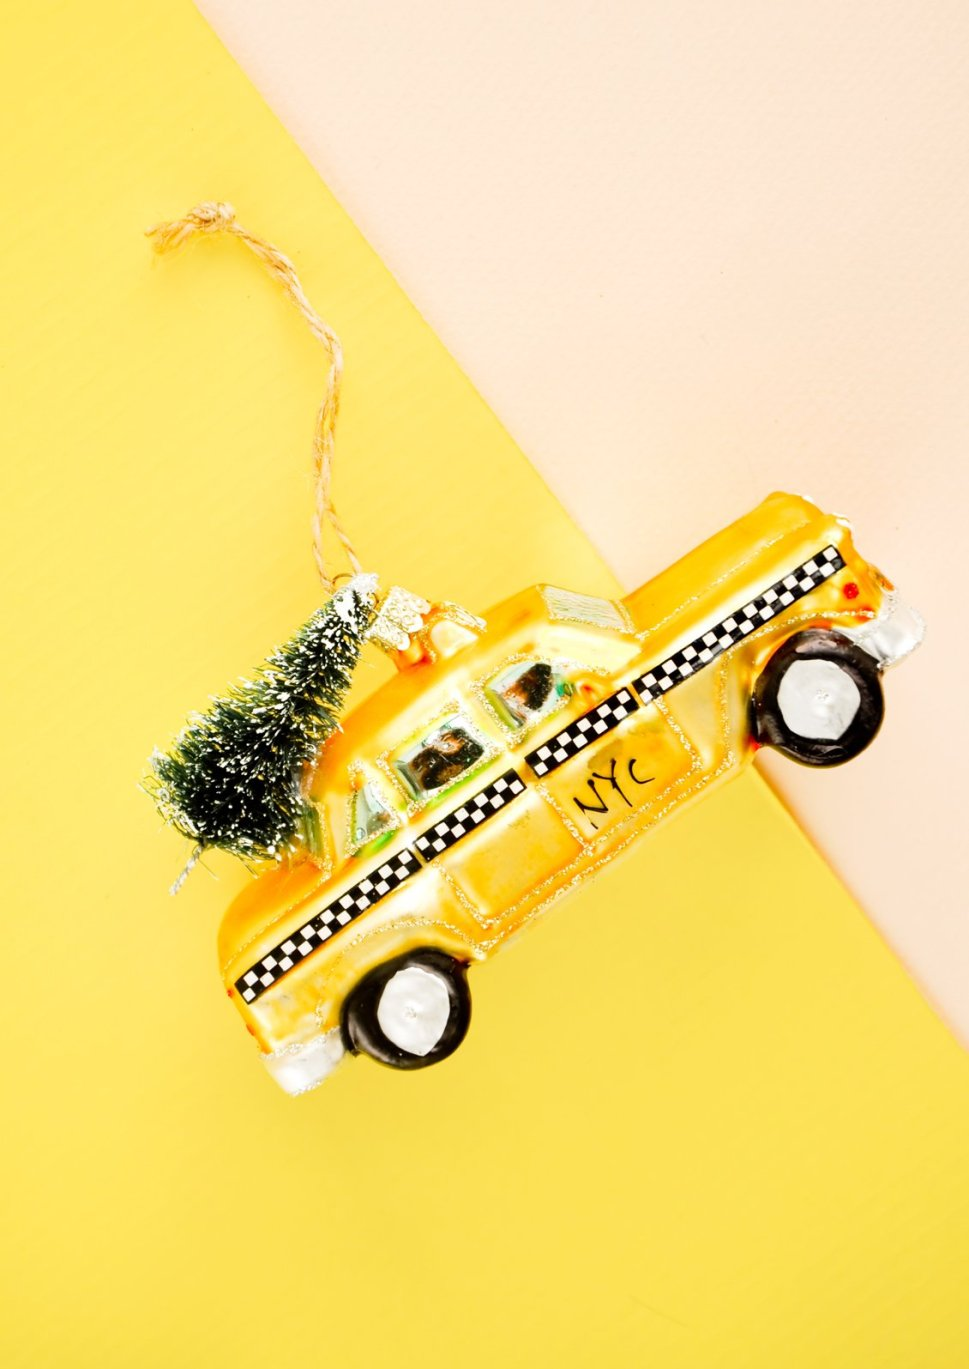 christmas_taxi_ornament_800x800@2x.jpg